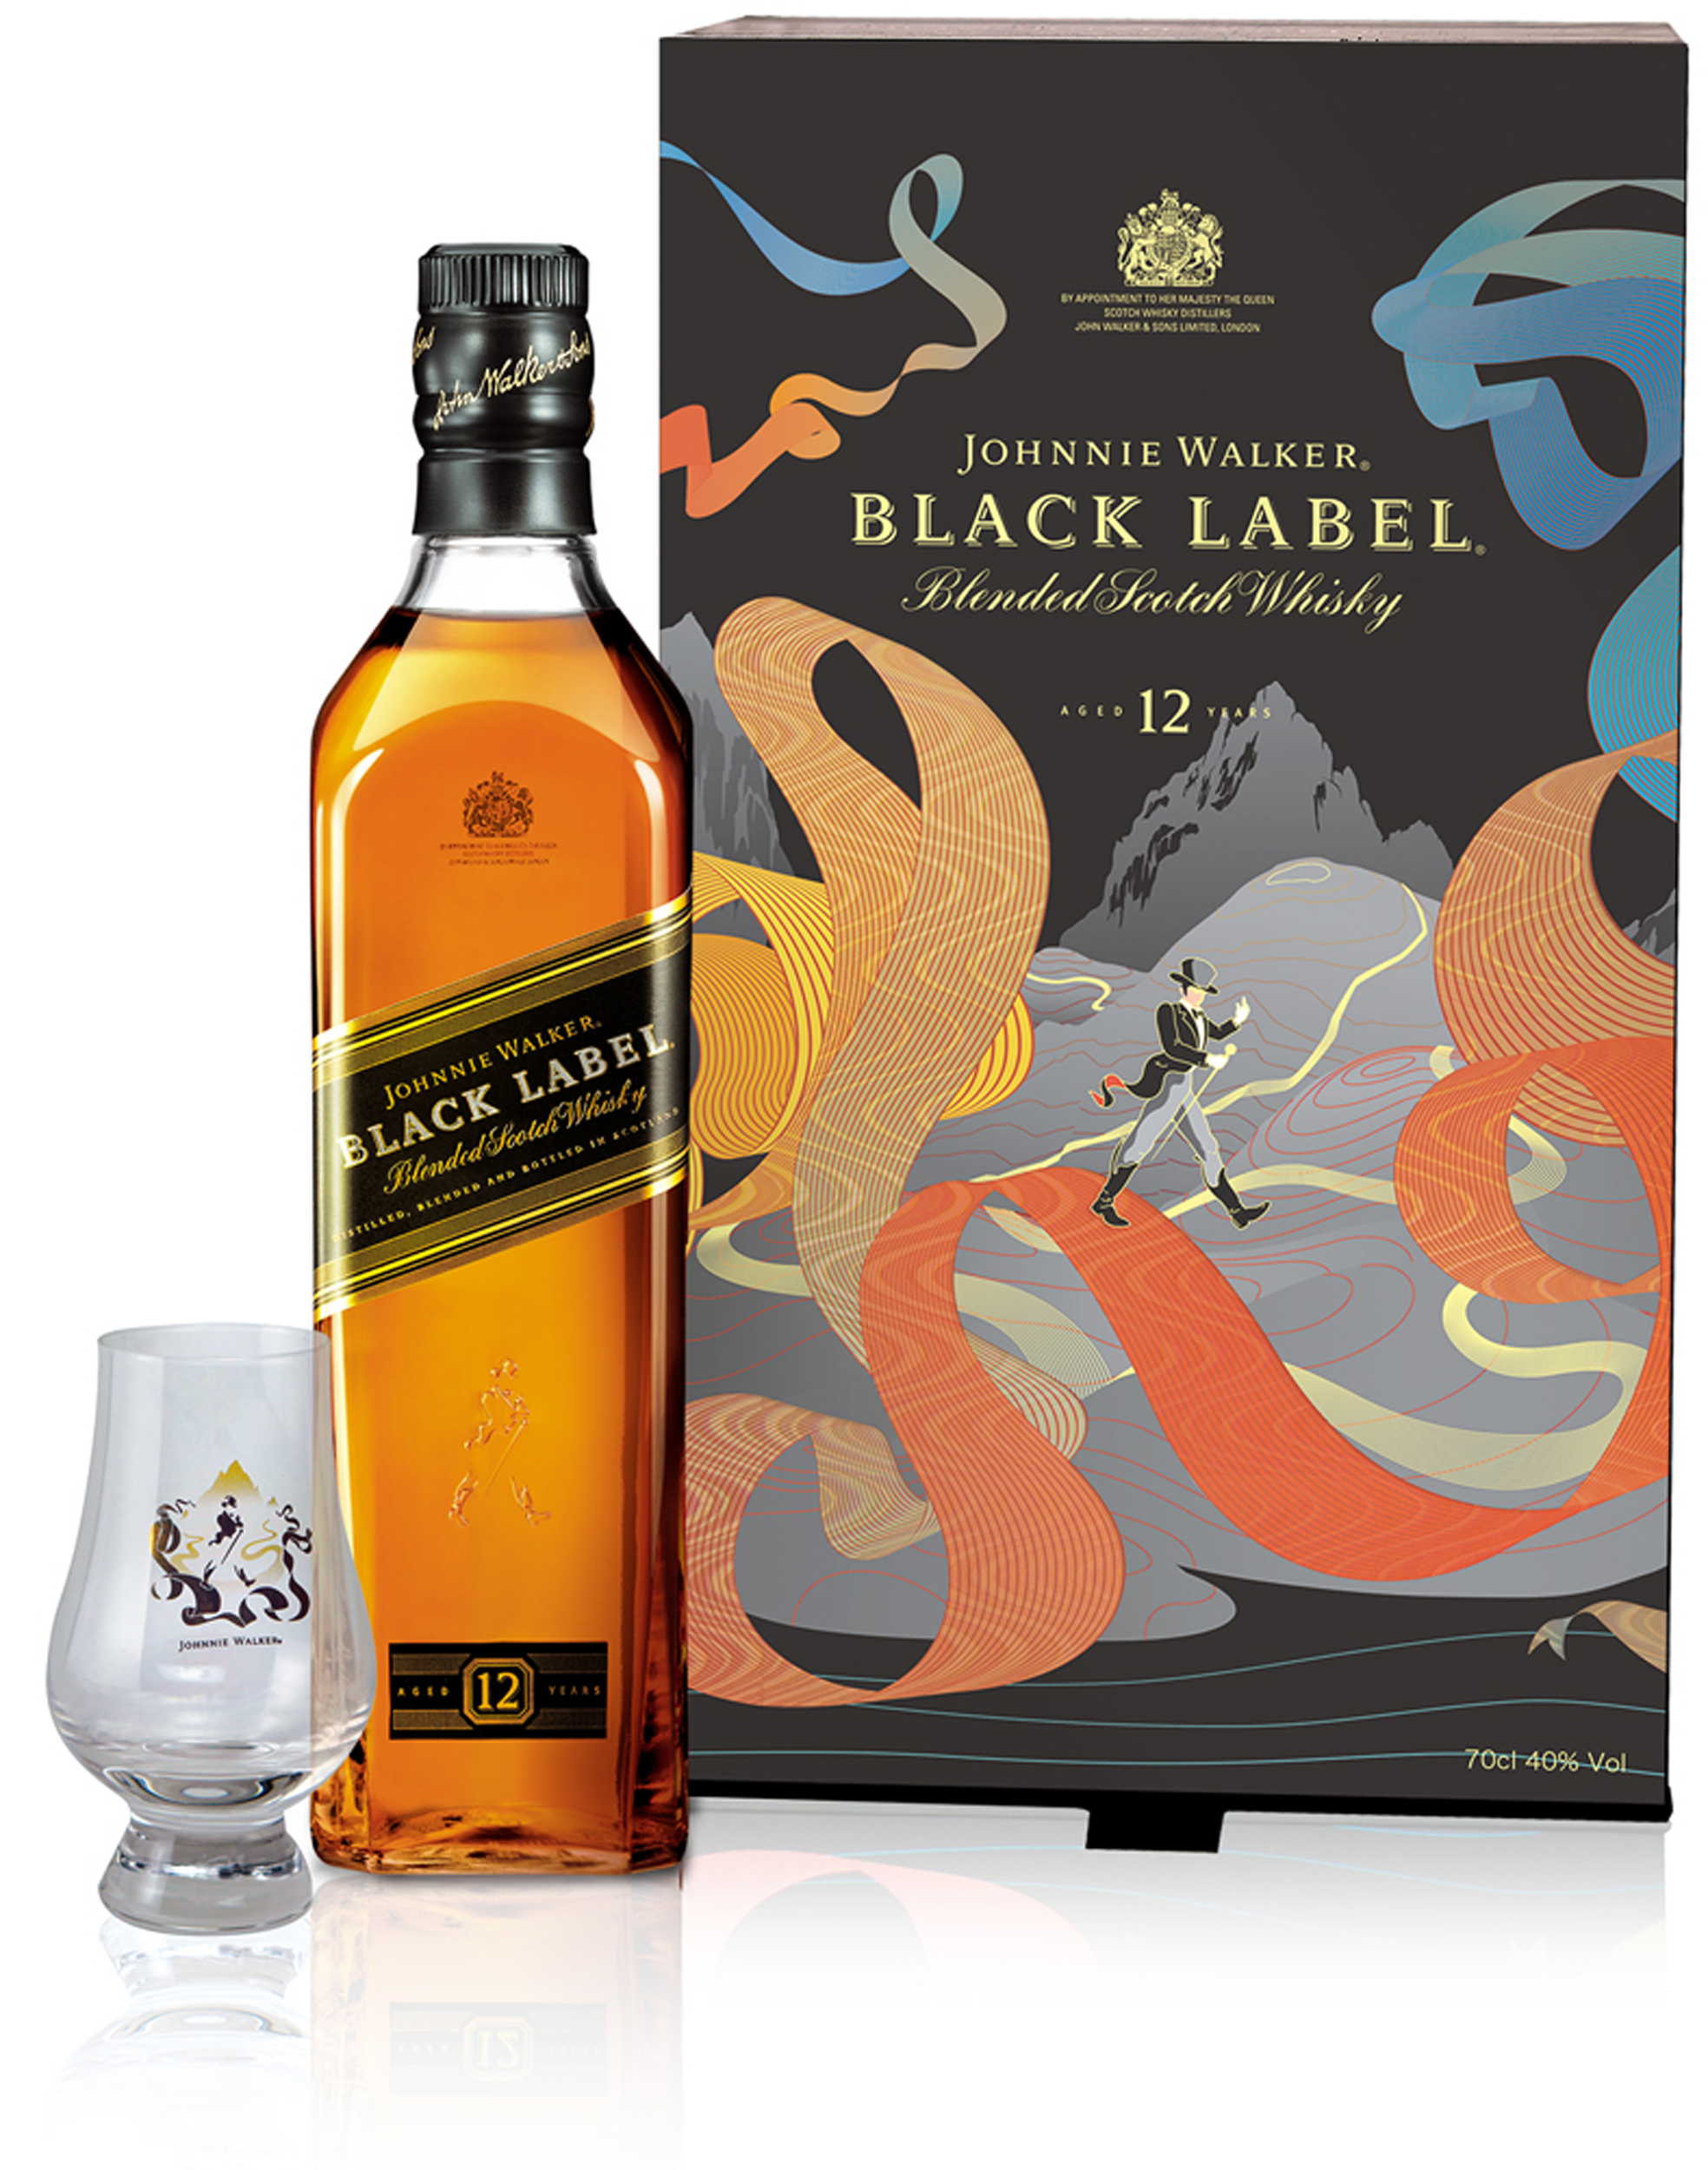 johnnie walker We have an extensive range of johnnie walker blended whiskies available at great prices, including an engraved johnnie walker blue label bottling johnnie walker was created in 1860 when john walker & sons began to export the family's whisky.